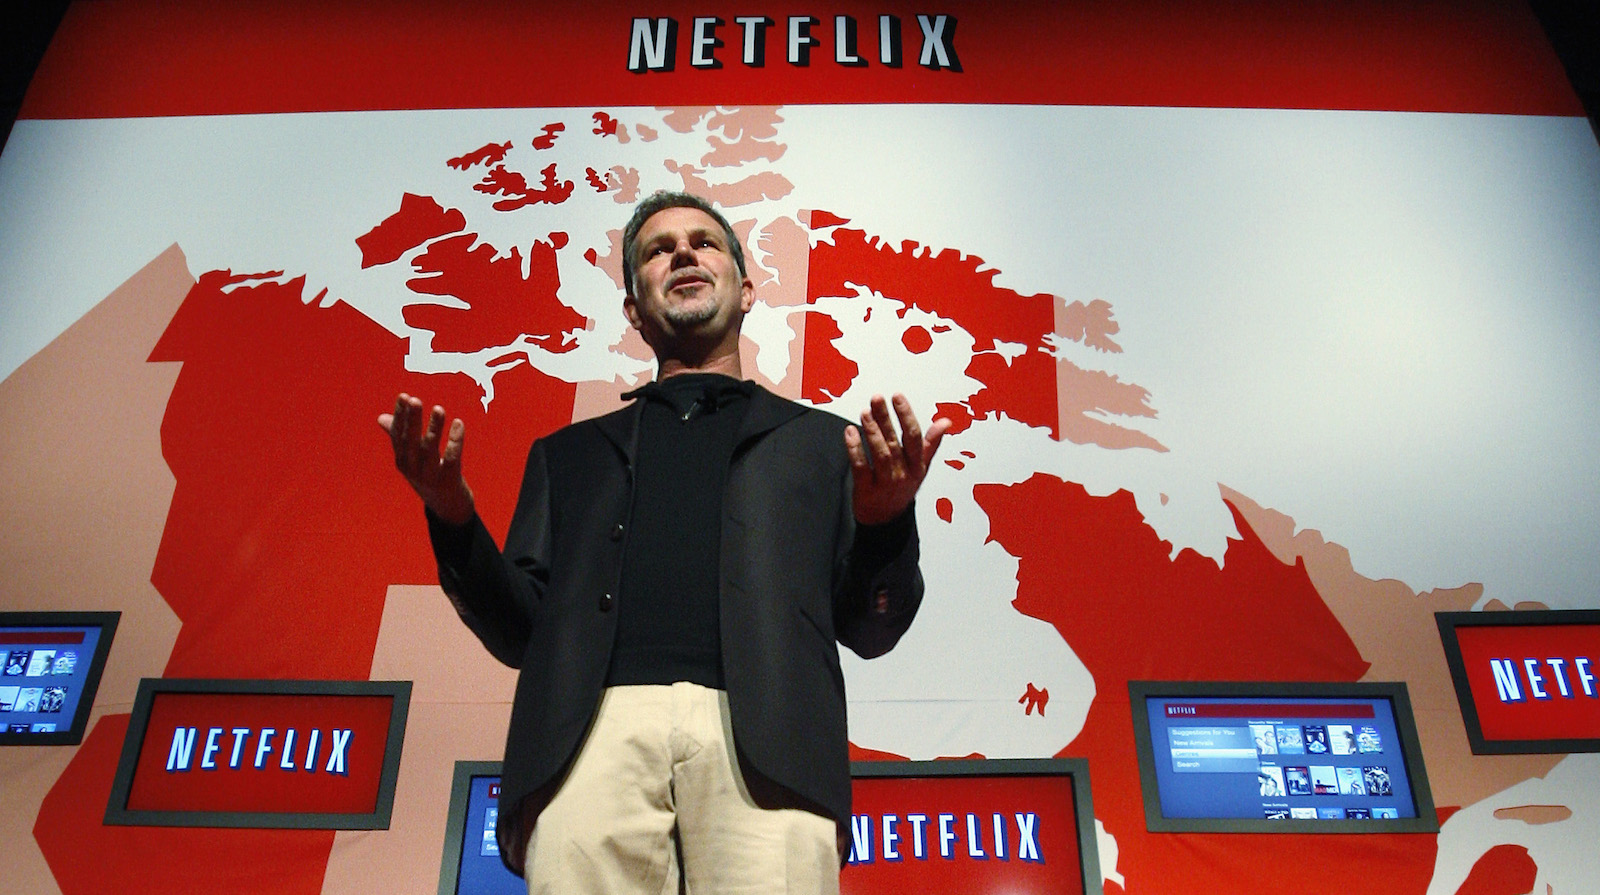 Netflix Chief Executive Officer Reed Hastings speaks during the launch of streaming internet subscription service for movies and TV shows to TVs and computers in Canada at a news conference  in Toronto September 22, 2010. The Canadian introduction marks the first availability of the Netflix service outside of the United States.   REUTERS/ Mike Cassese   (CANADA - Tags: MEDIA BUSINESS) - RTXSJ6V